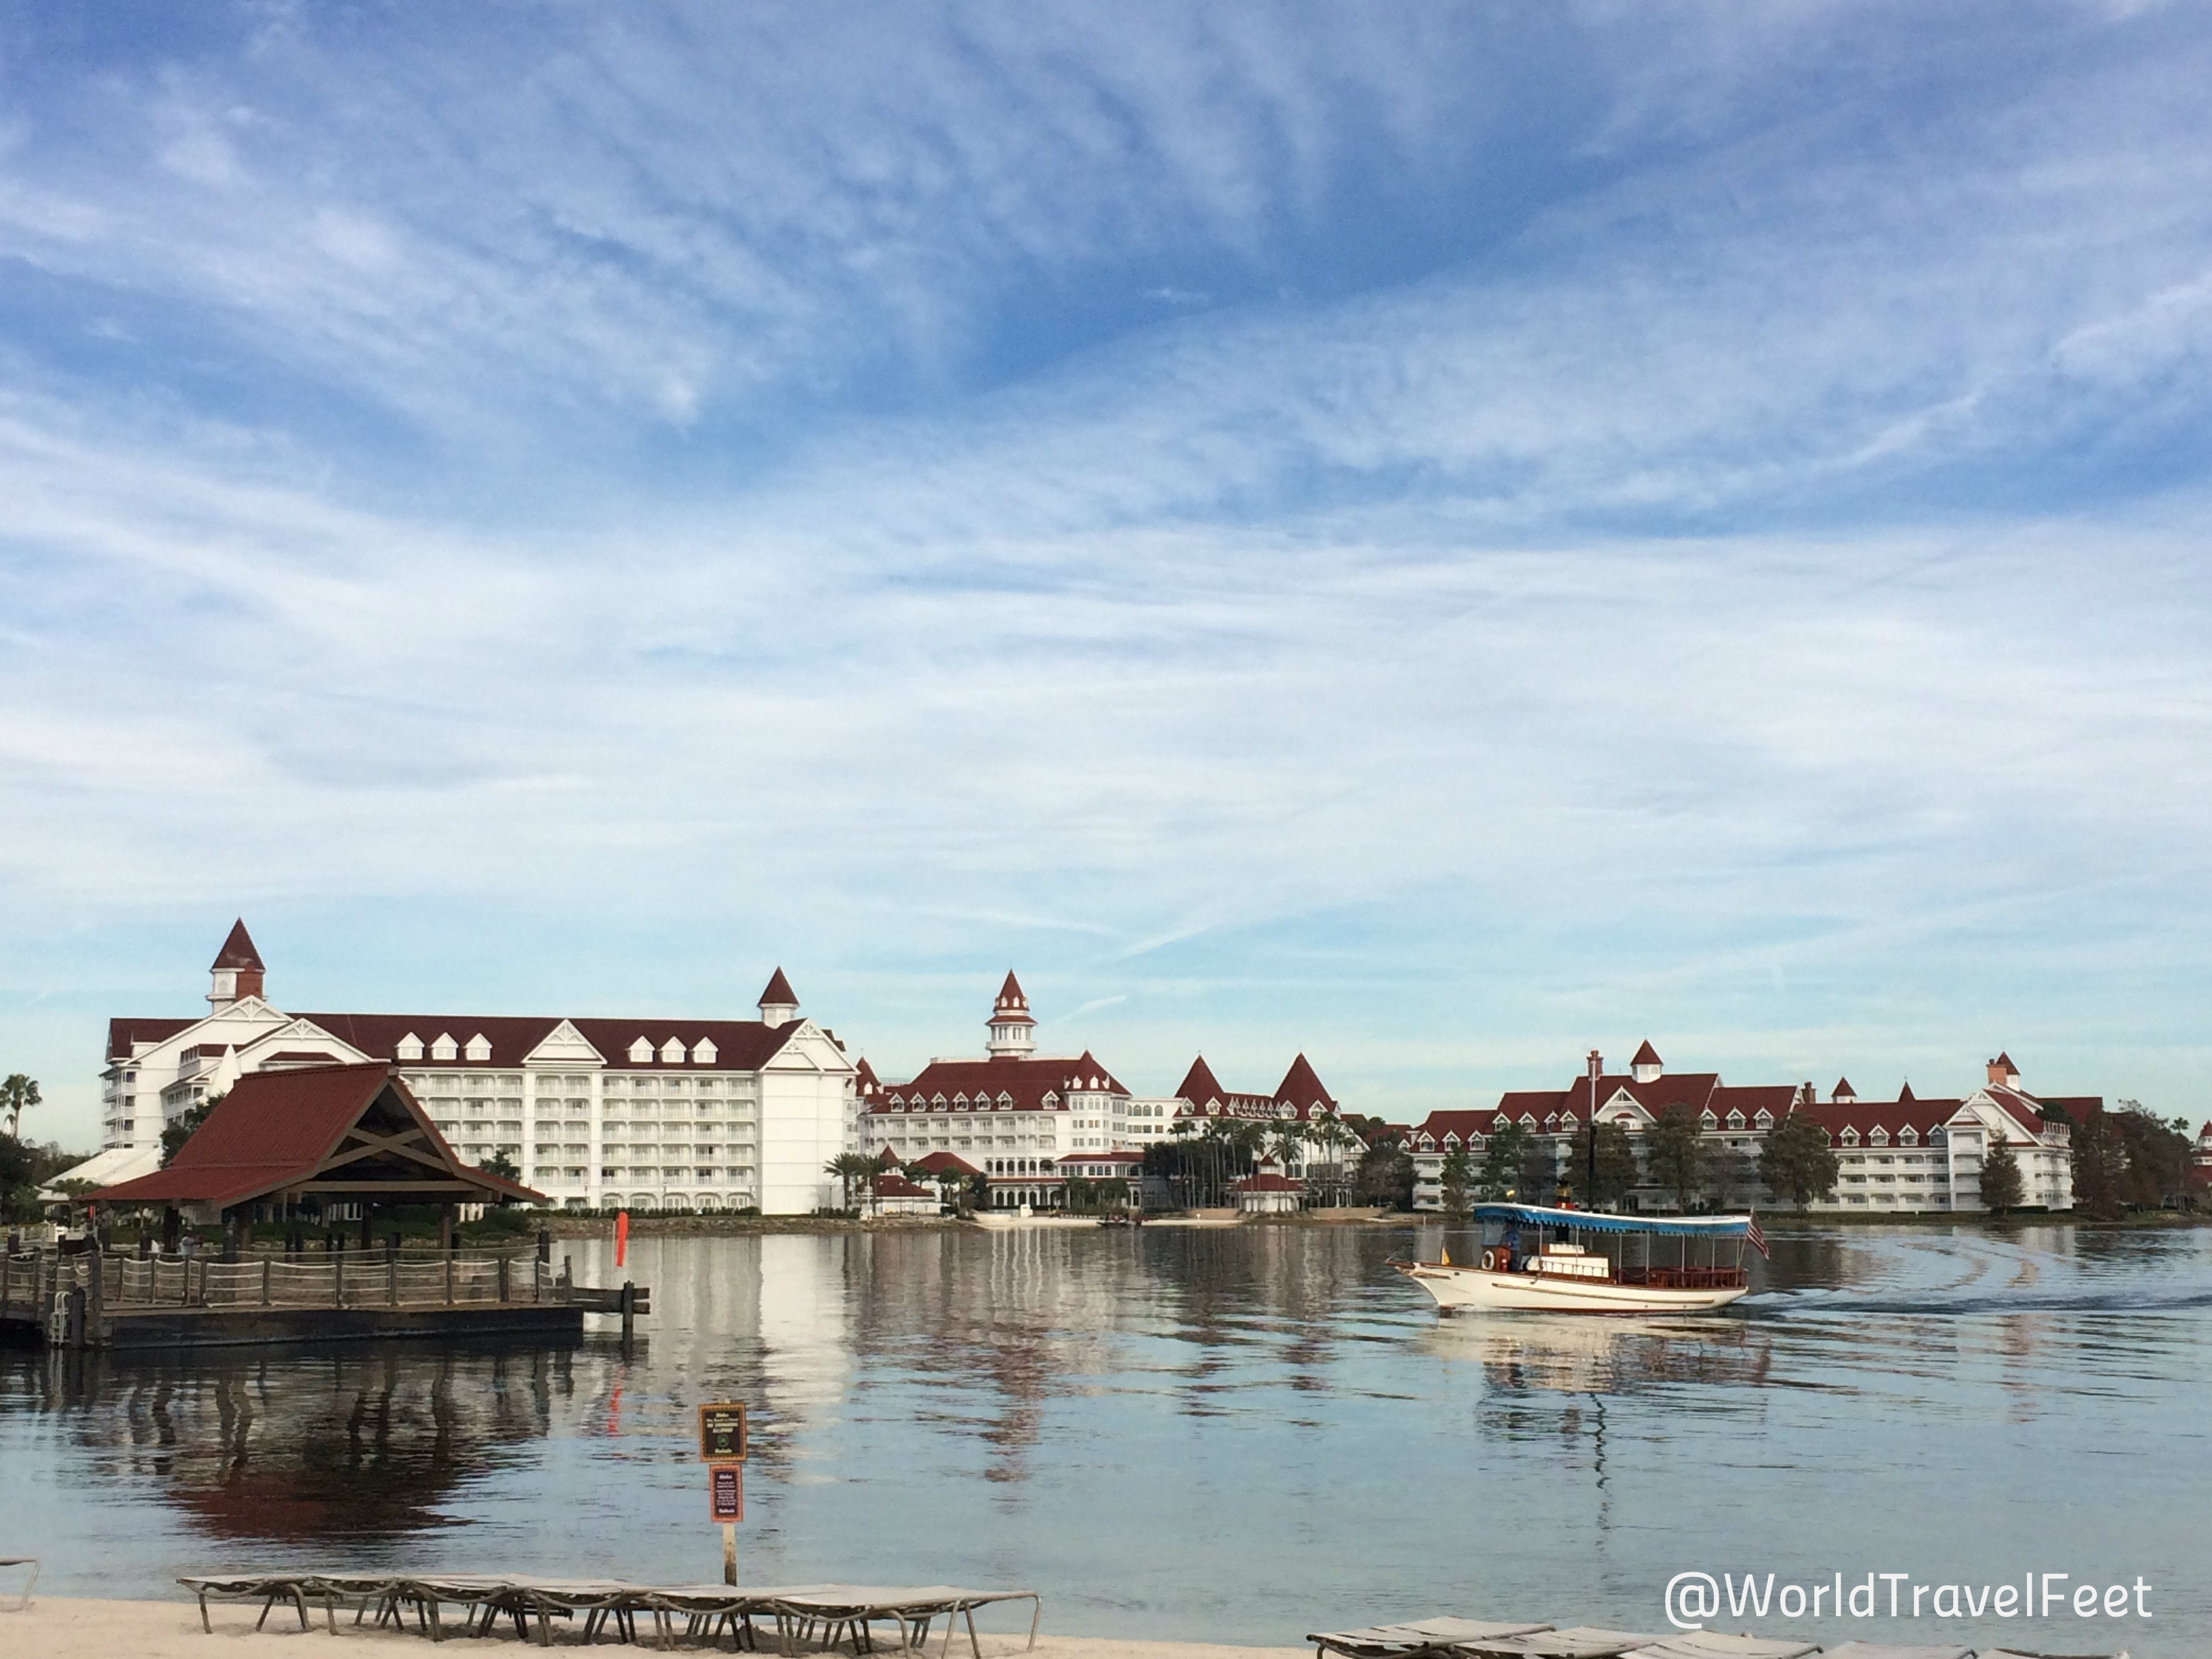 Vista del Grand Floridian Resort desde las Polinesian Village.